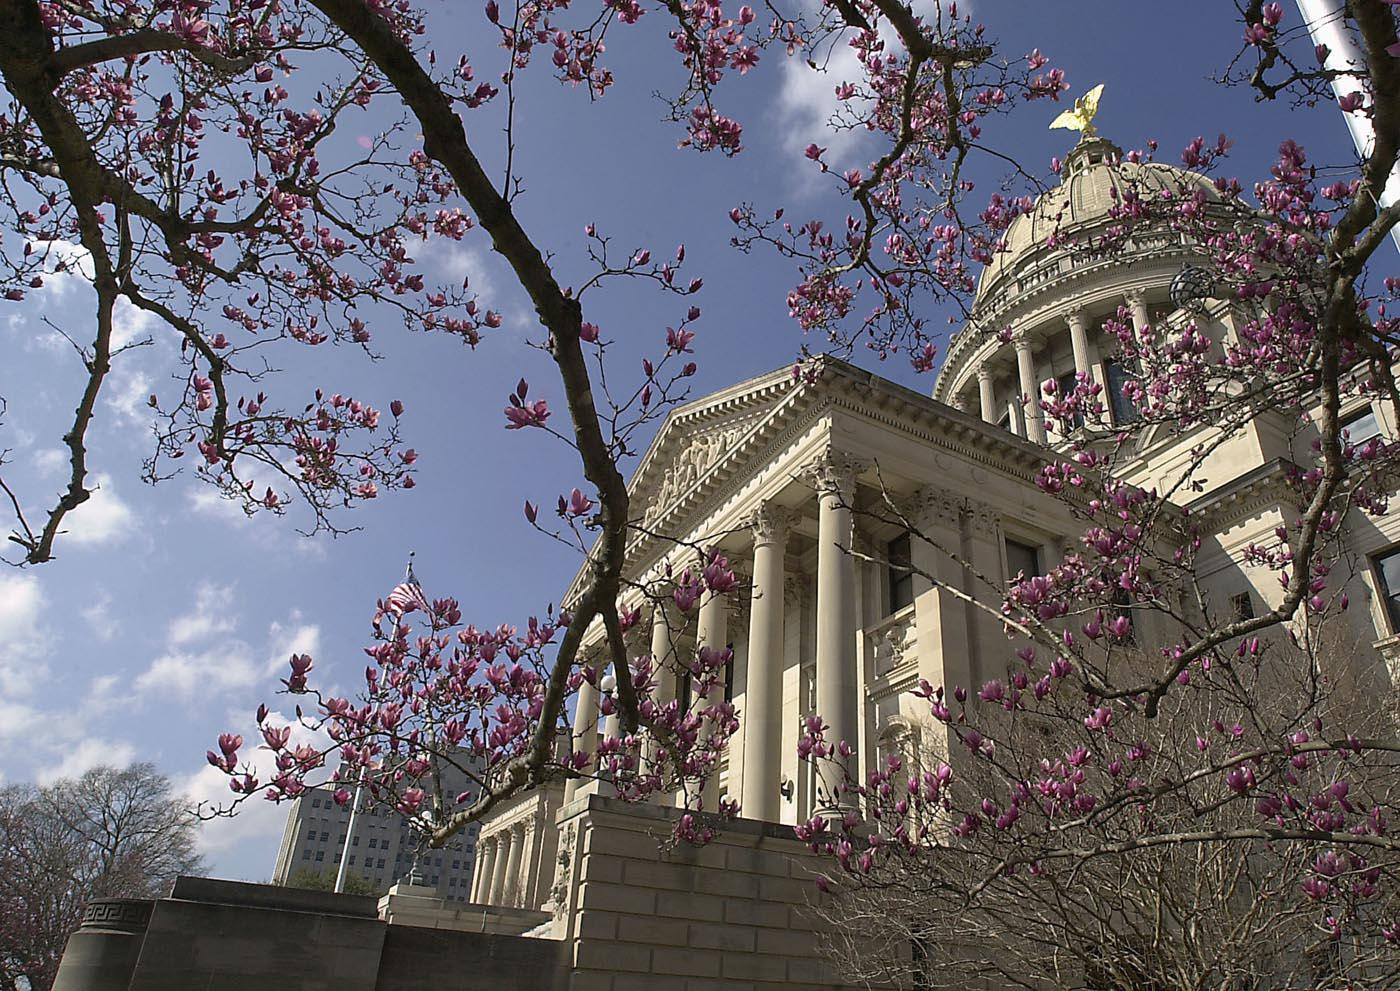 The Japanese Magnolia, also called saucer magnolia or tulip magnolia, features flowers that may reach 6 inches across in shades of pink to dark purple. The saucer magnolias pictured here provide a beautiful setting for the state Capitol.